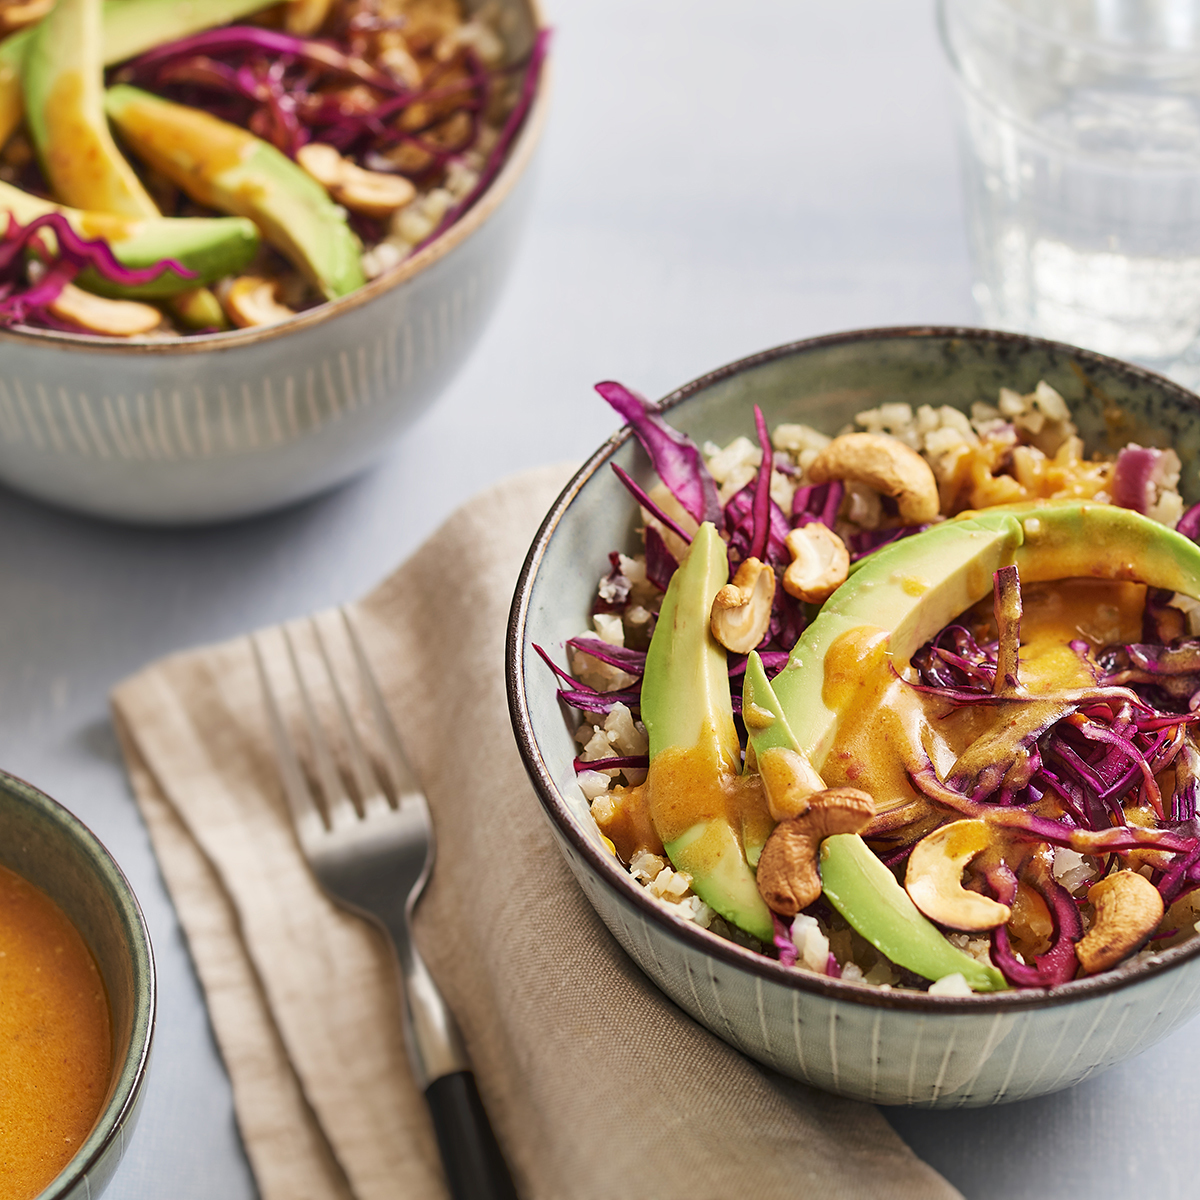 Bowl with cauliflower rice, avocado, red cabbage and cashew nuts